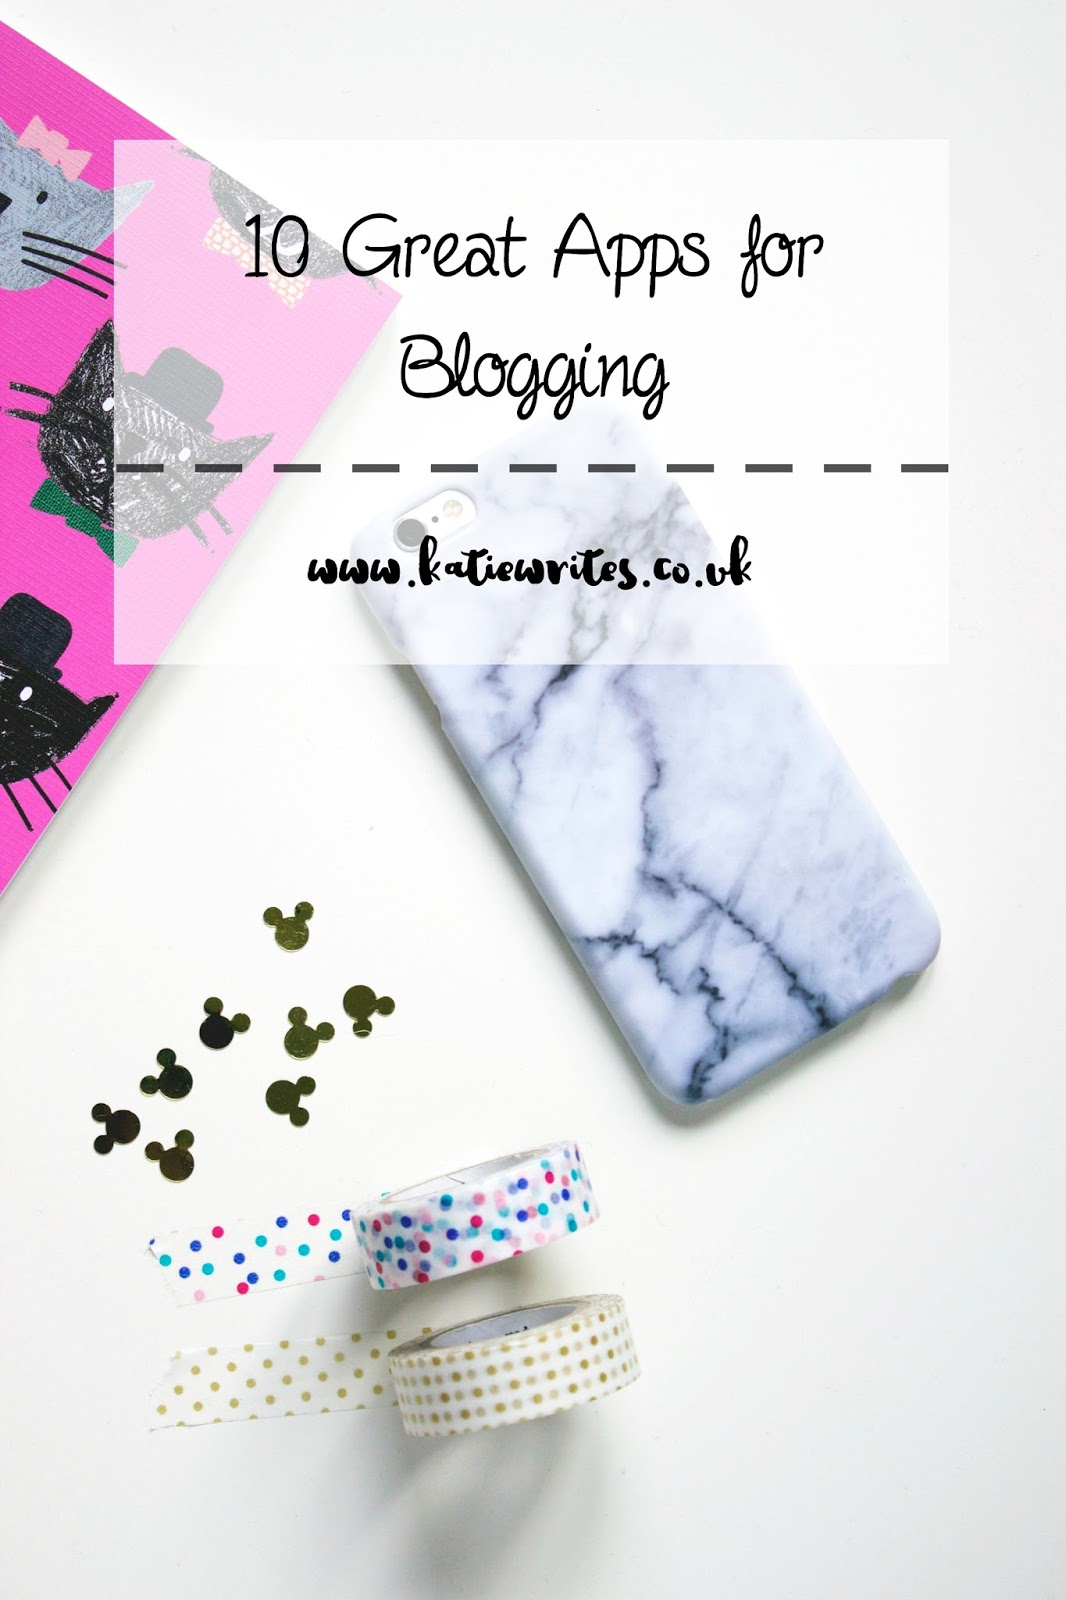 10 Great Apps for Bloggers, Apps for Blogging, Blogging Apps, Blogging advice, How to start a blog, Blogs,